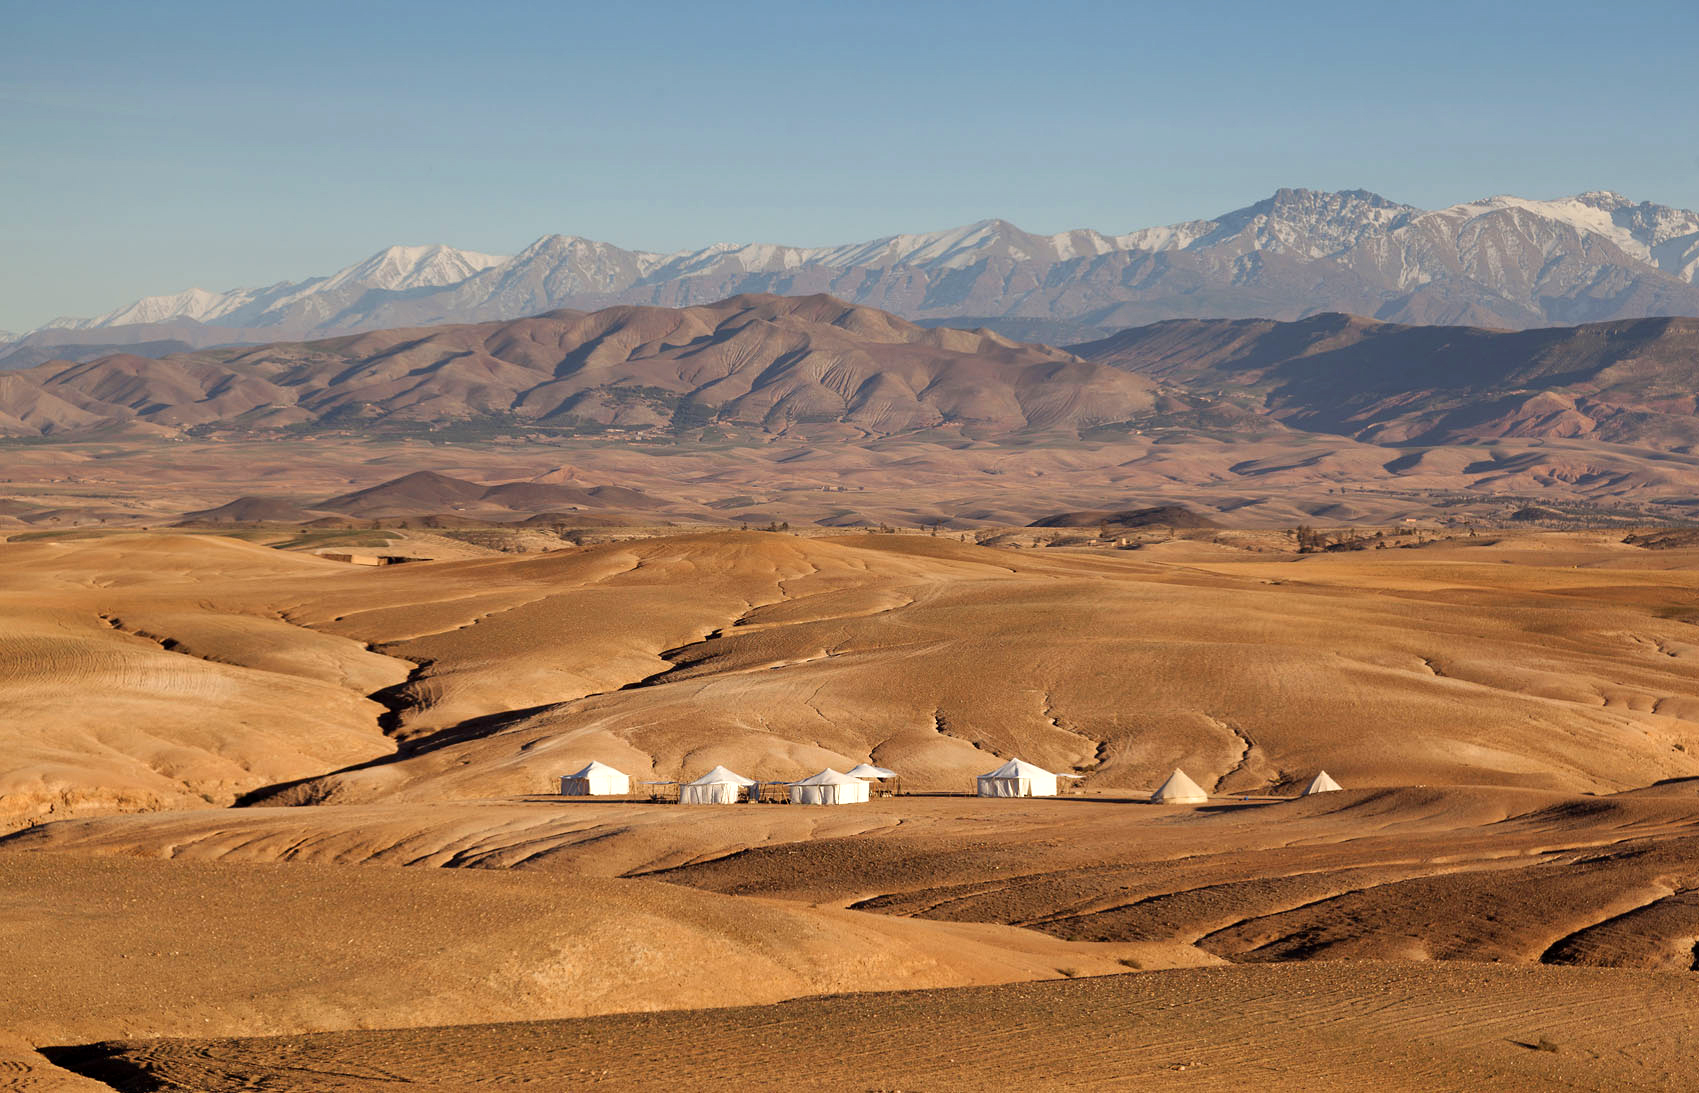 MOROCCO: A DESERT RETREAT - This austere tented camp isn't far from Marrakesh, but it's literally off the map.Wall Street Journal, 2013.